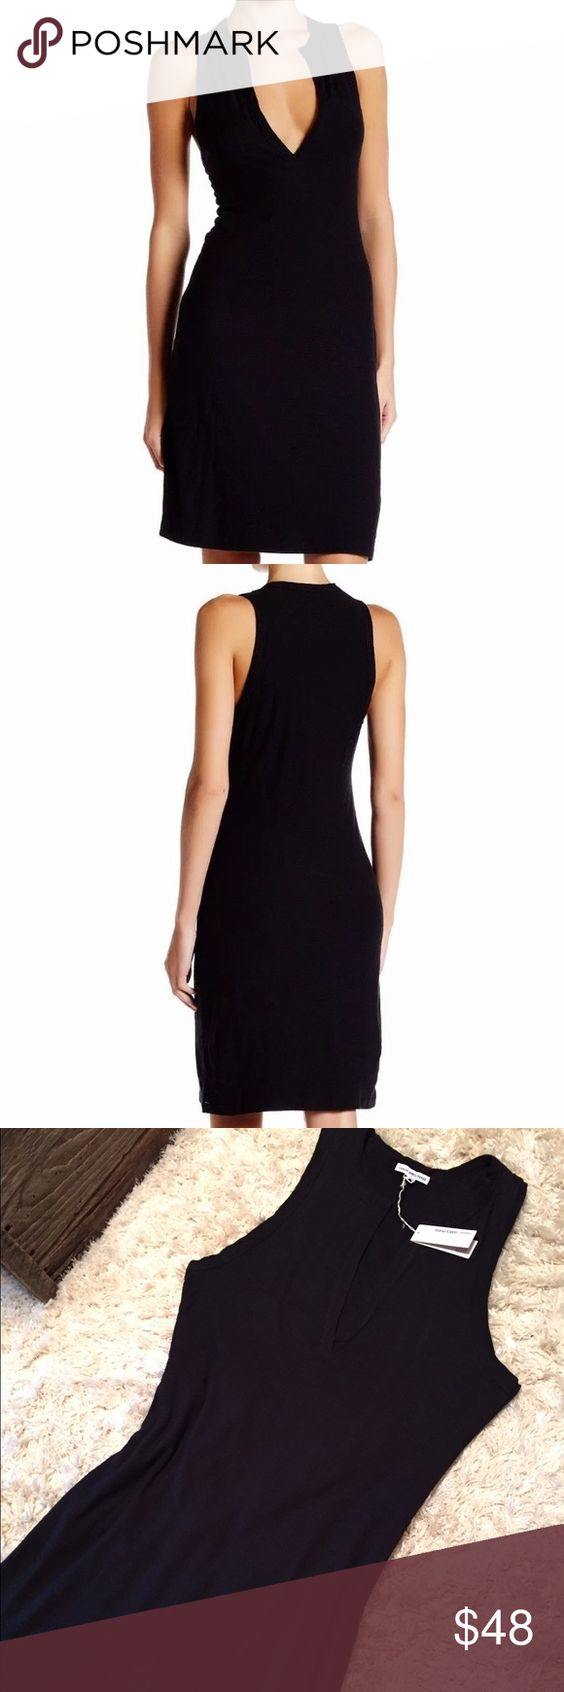 James Perse Open Henley Tank Dress in Black Sz 3 New with tags- James Perse Jersey Open Henley Tank Dress. Cotton Blend. Black. James Perse is the softest clothing you can imagine. It's luxurious. Size 3 James Perse Dresses Mini